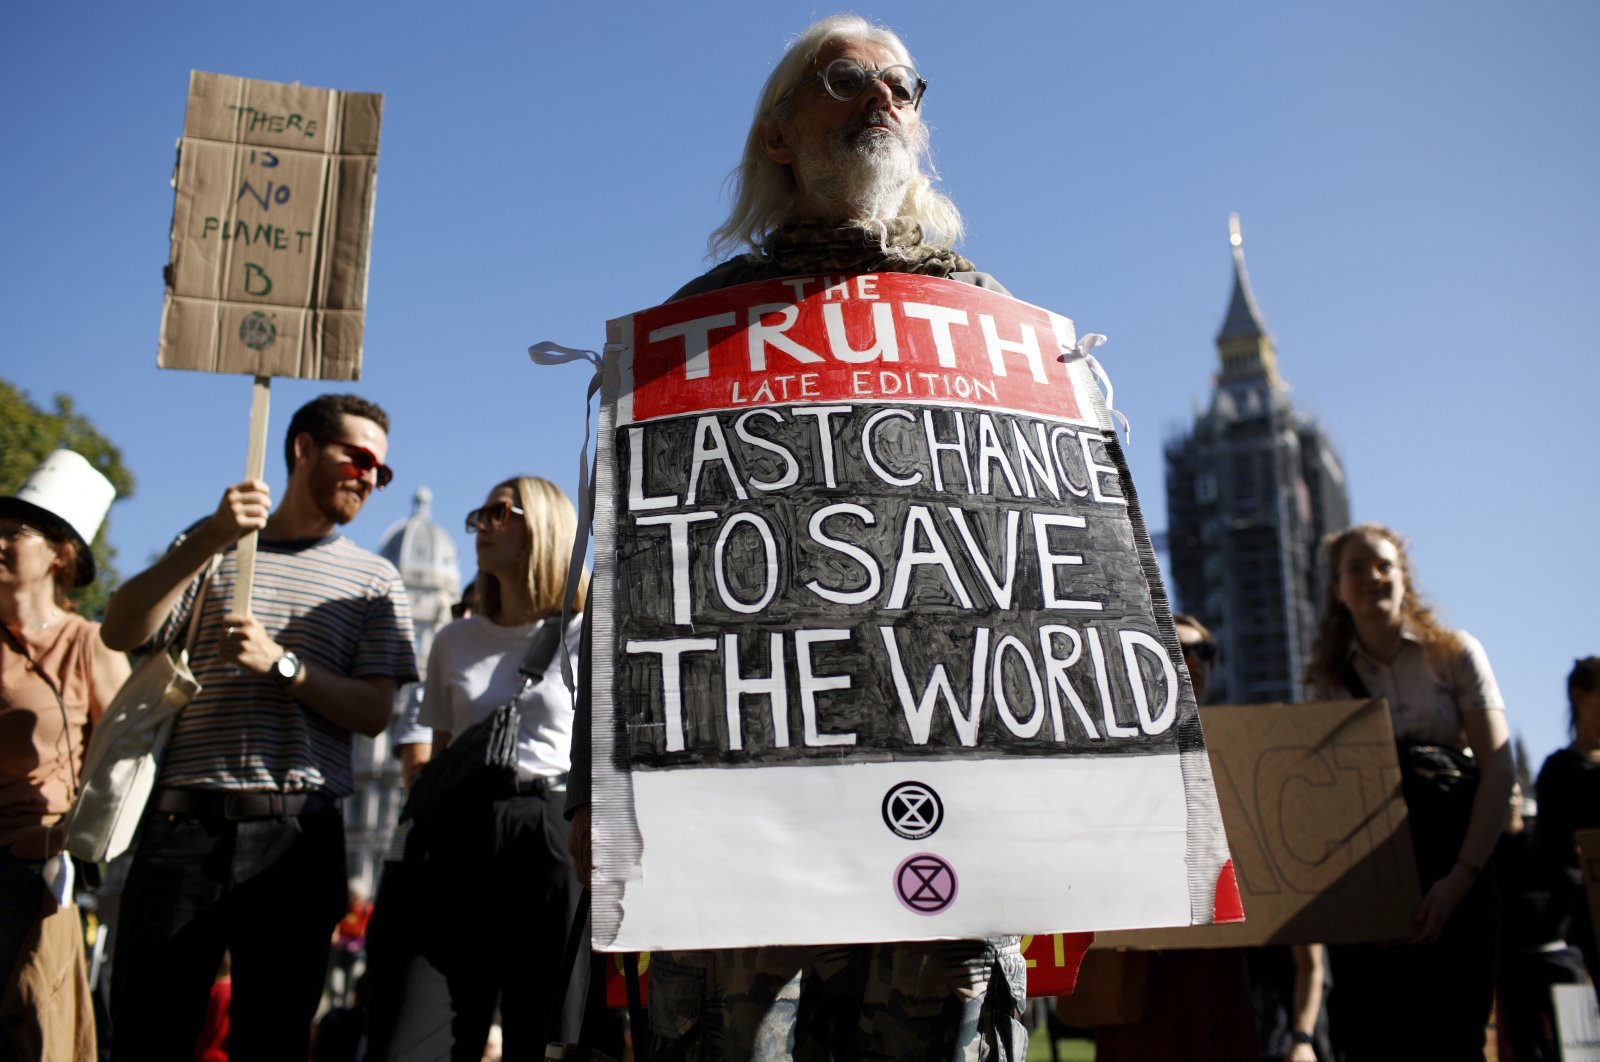 """Activists take part in a """"climate strike"""" demonstration, part of the global """"Fridays for Future"""" movement led by Swedish teenage environmentalist Greta Thunberg, in Parliament Square in London, Britain, Sept. 24, 2021. (AP Photo)"""